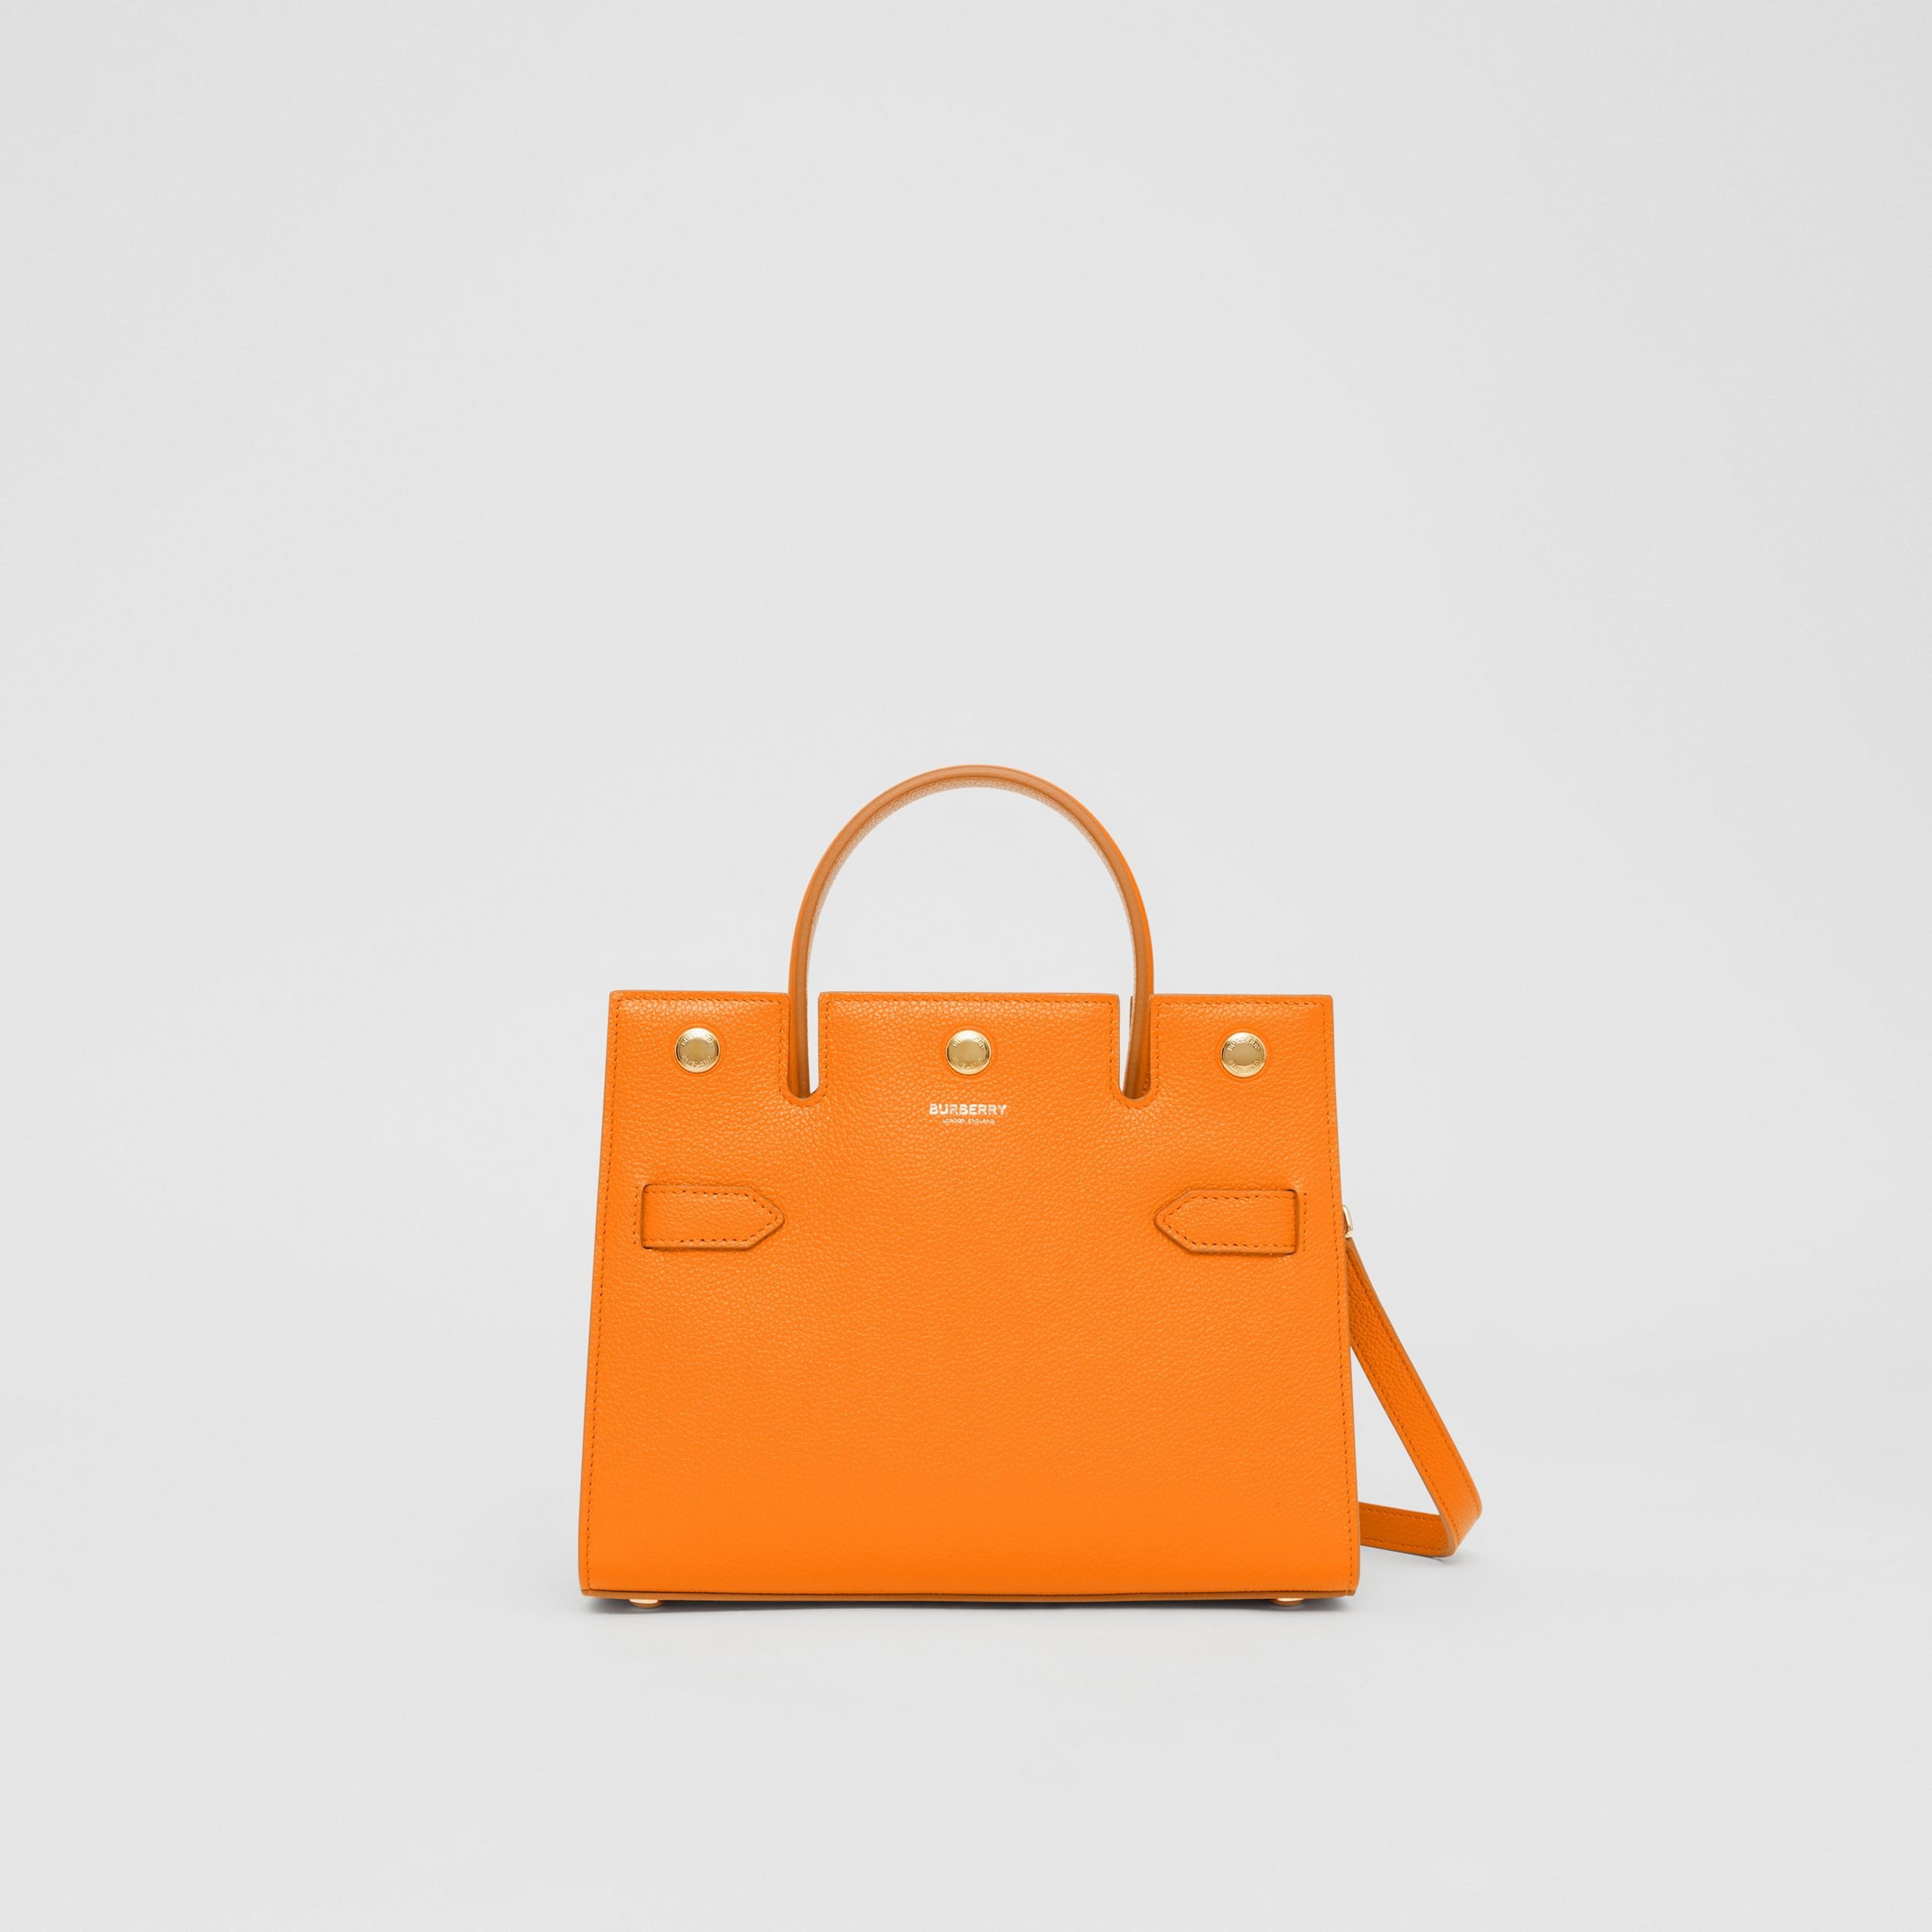 Mini Leather Title Bag in Orange - Women | Burberry - 1